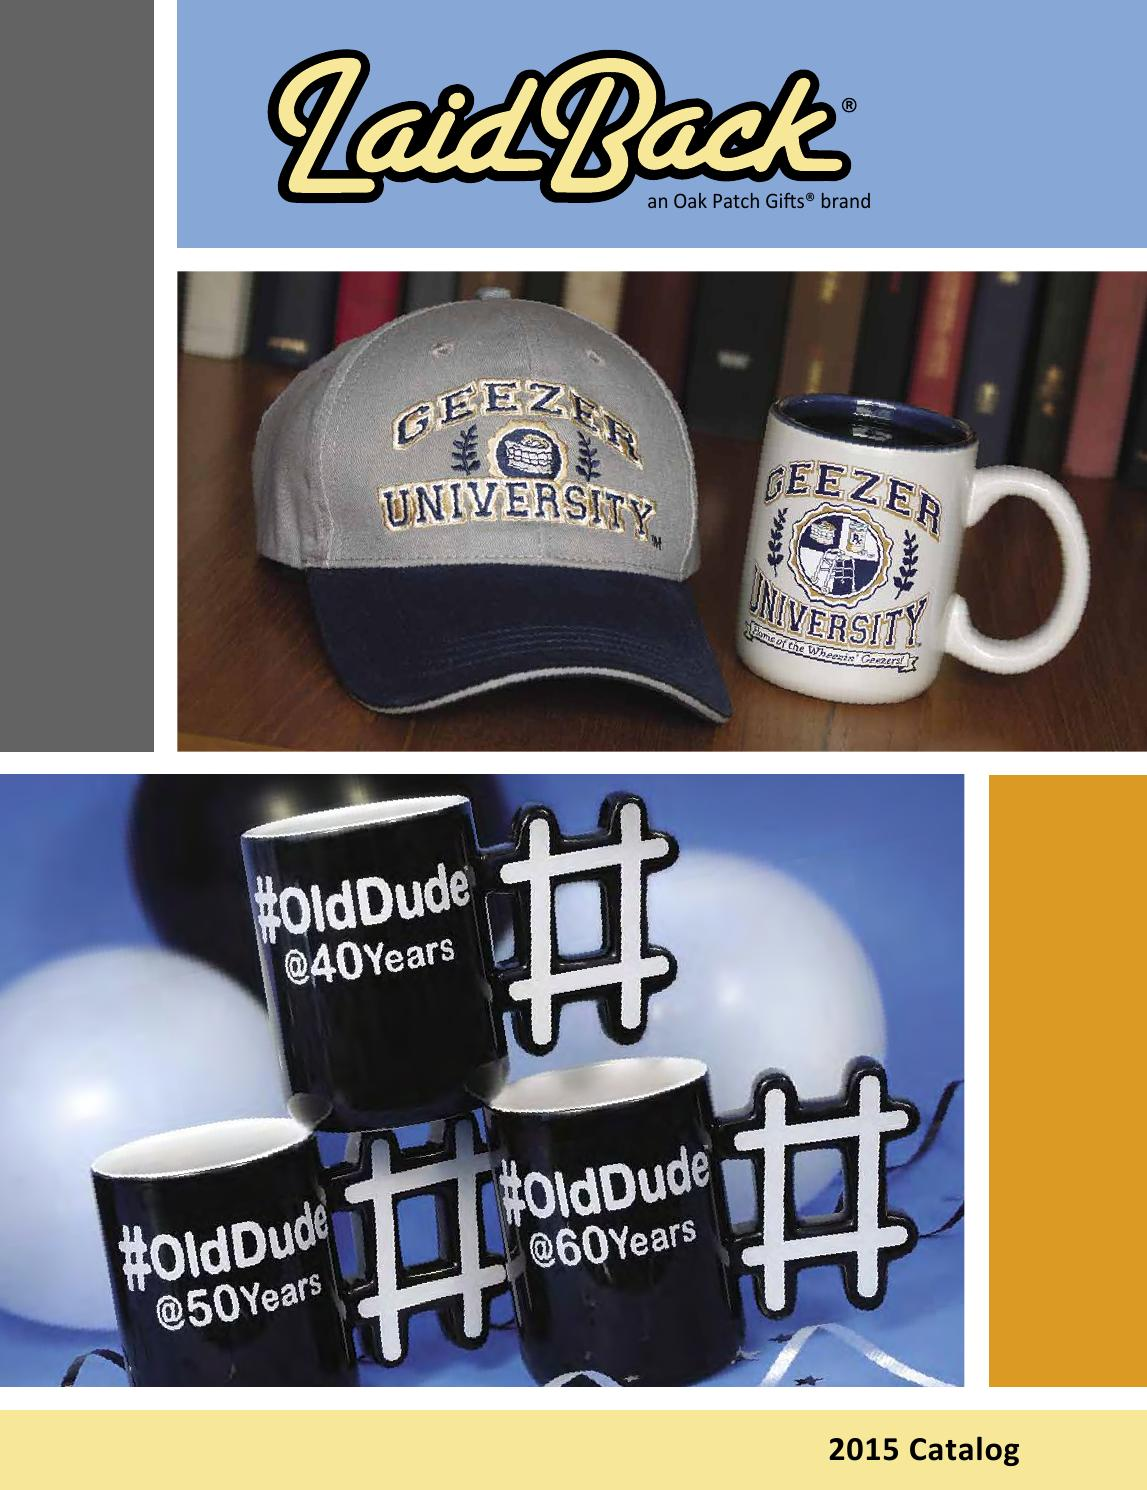 Oak Patch LaidBack Catalog Jan 2015 By Traditions